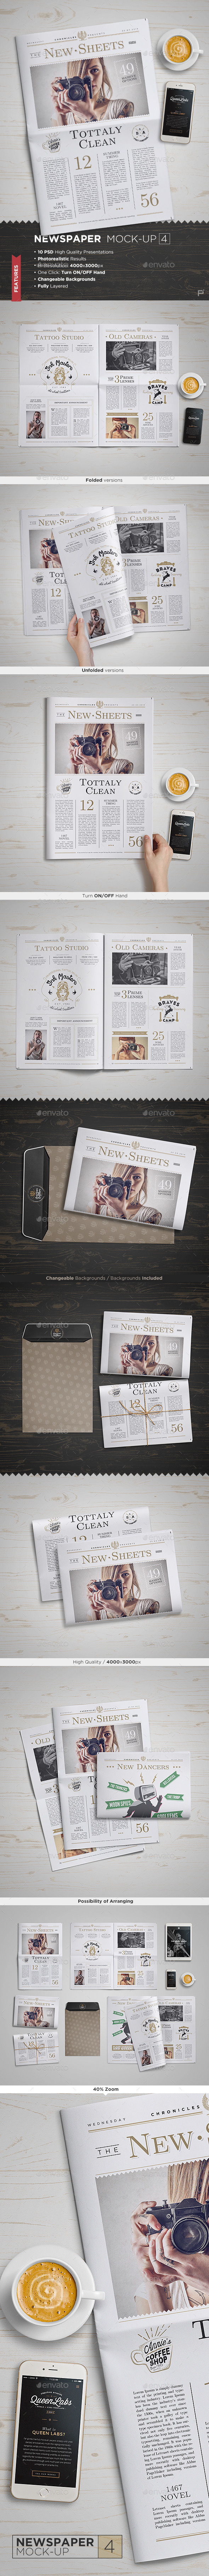 GraphicRiver Newspaper Mock-Up 4 11427146